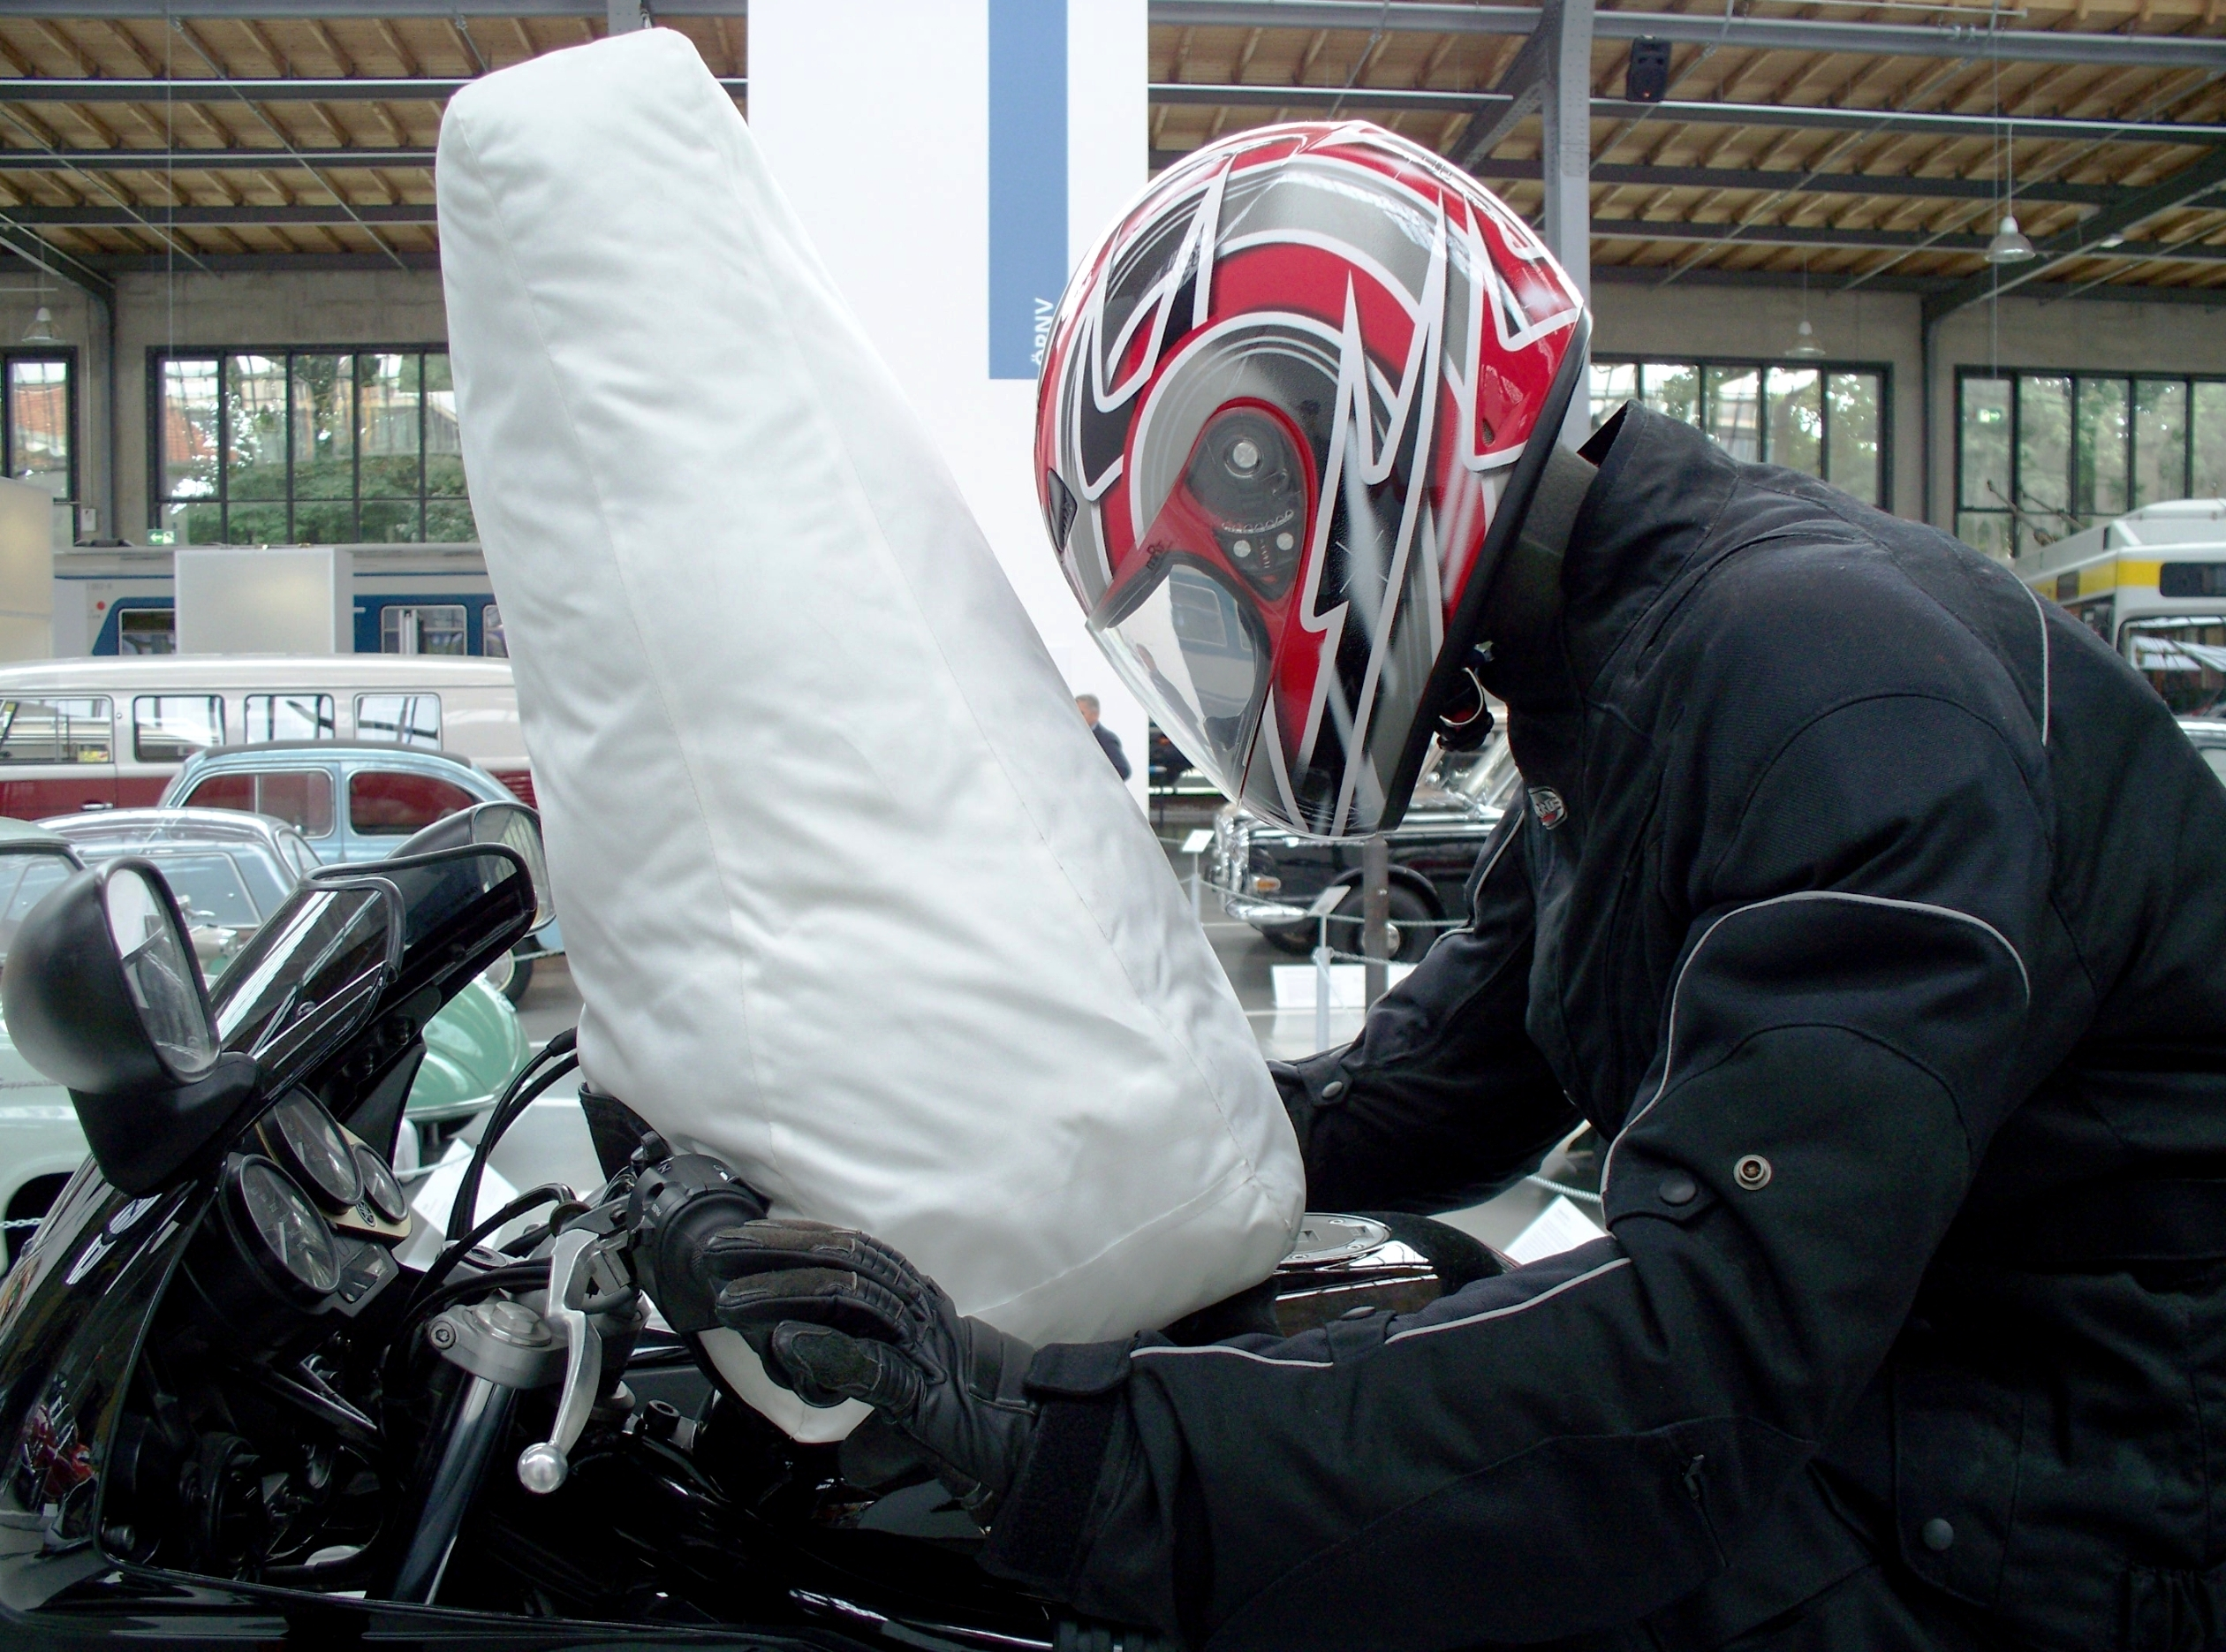 motorcycle full body armor saving lives reducing injuries gopro video industry tap. Black Bedroom Furniture Sets. Home Design Ideas